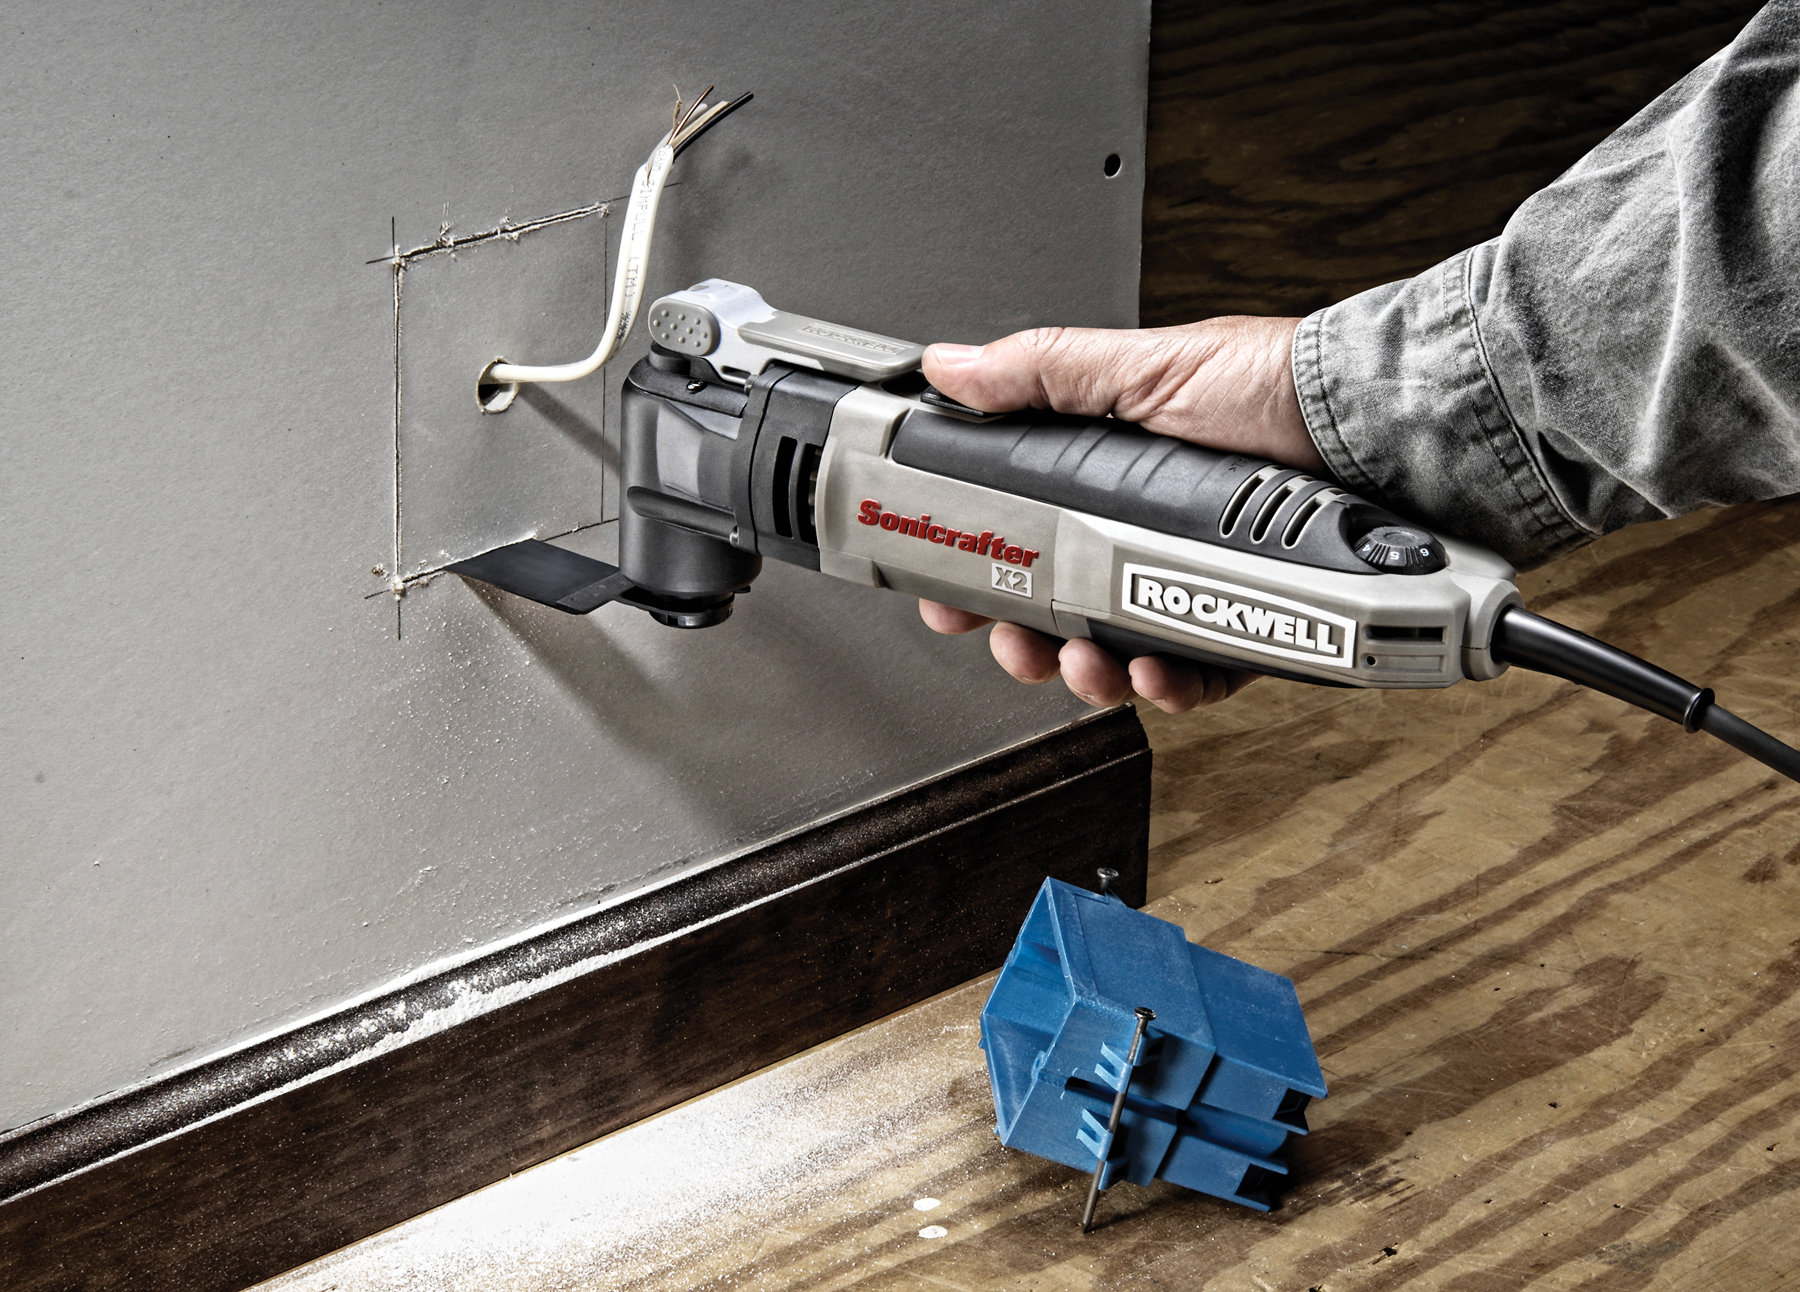 Universal Fit Accessory Mounting System Separates Rockwell